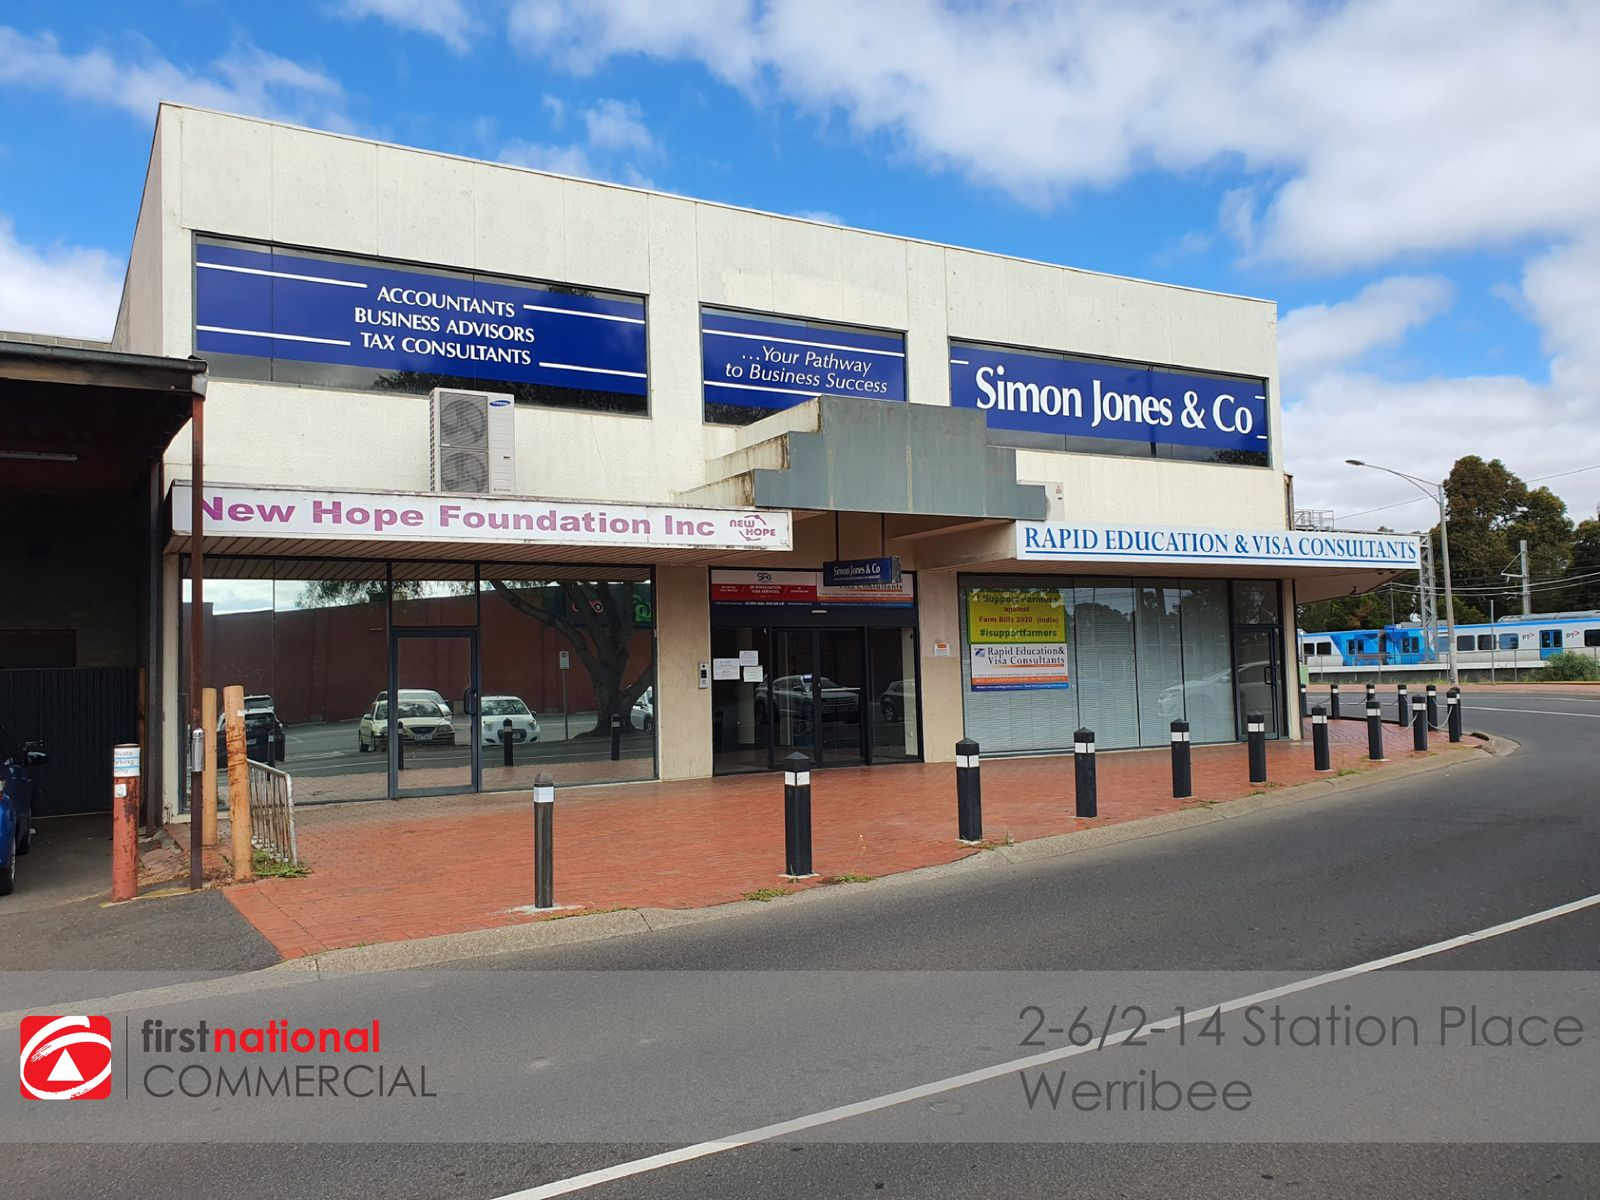 2-6/2-14 Station Place, Werribee, VIC 3030